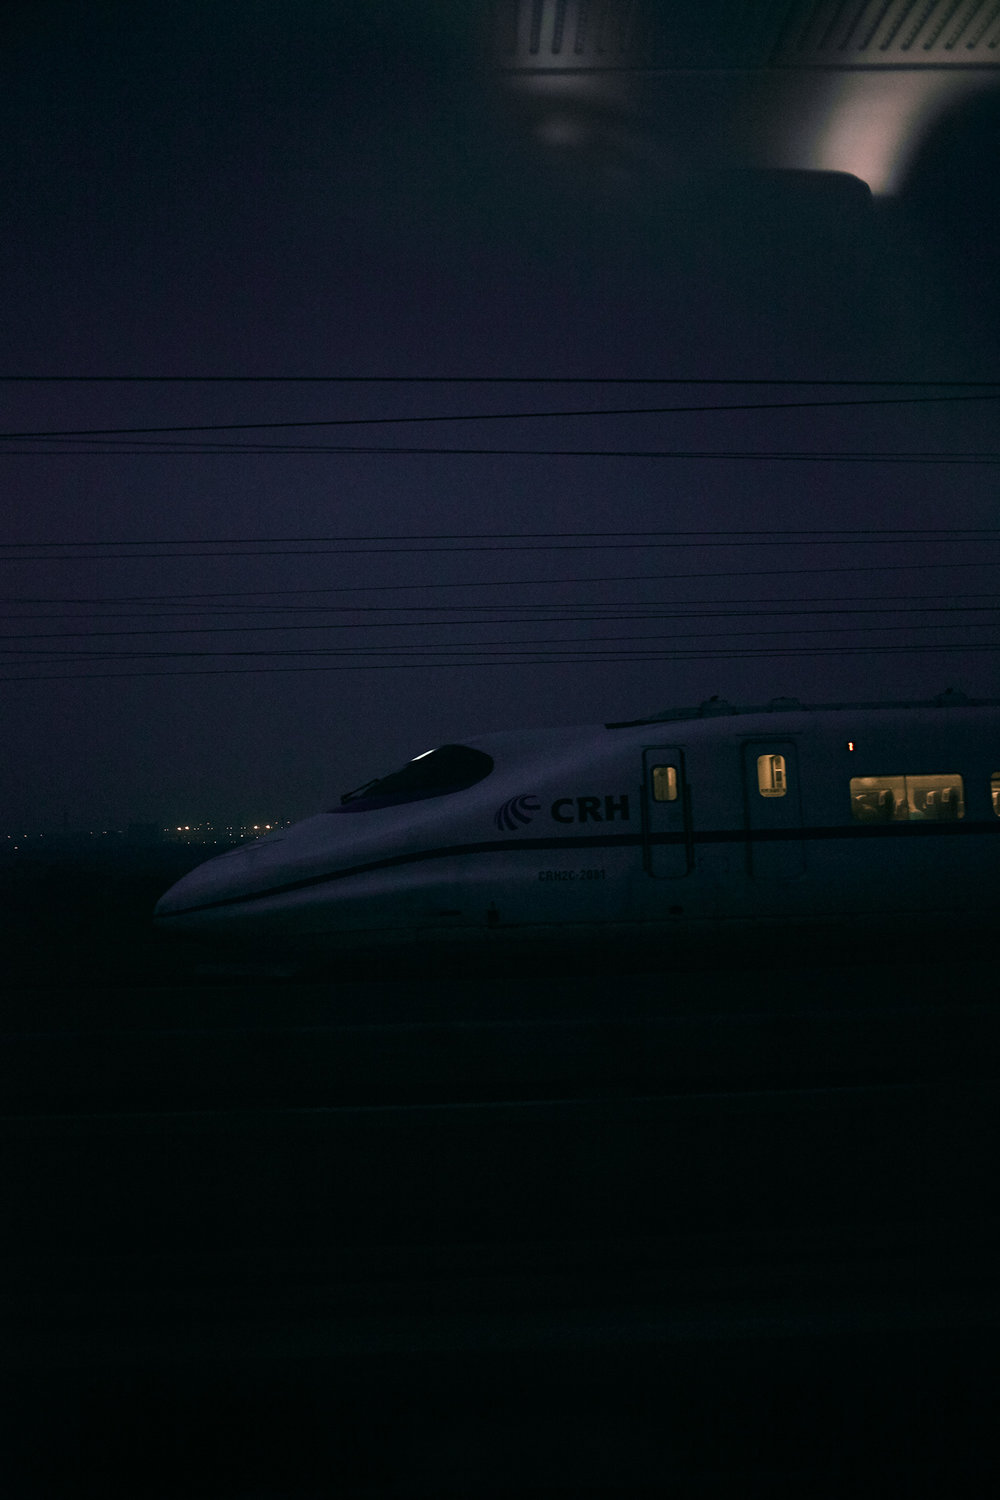 Bullet Train from Inland China to Shanghai